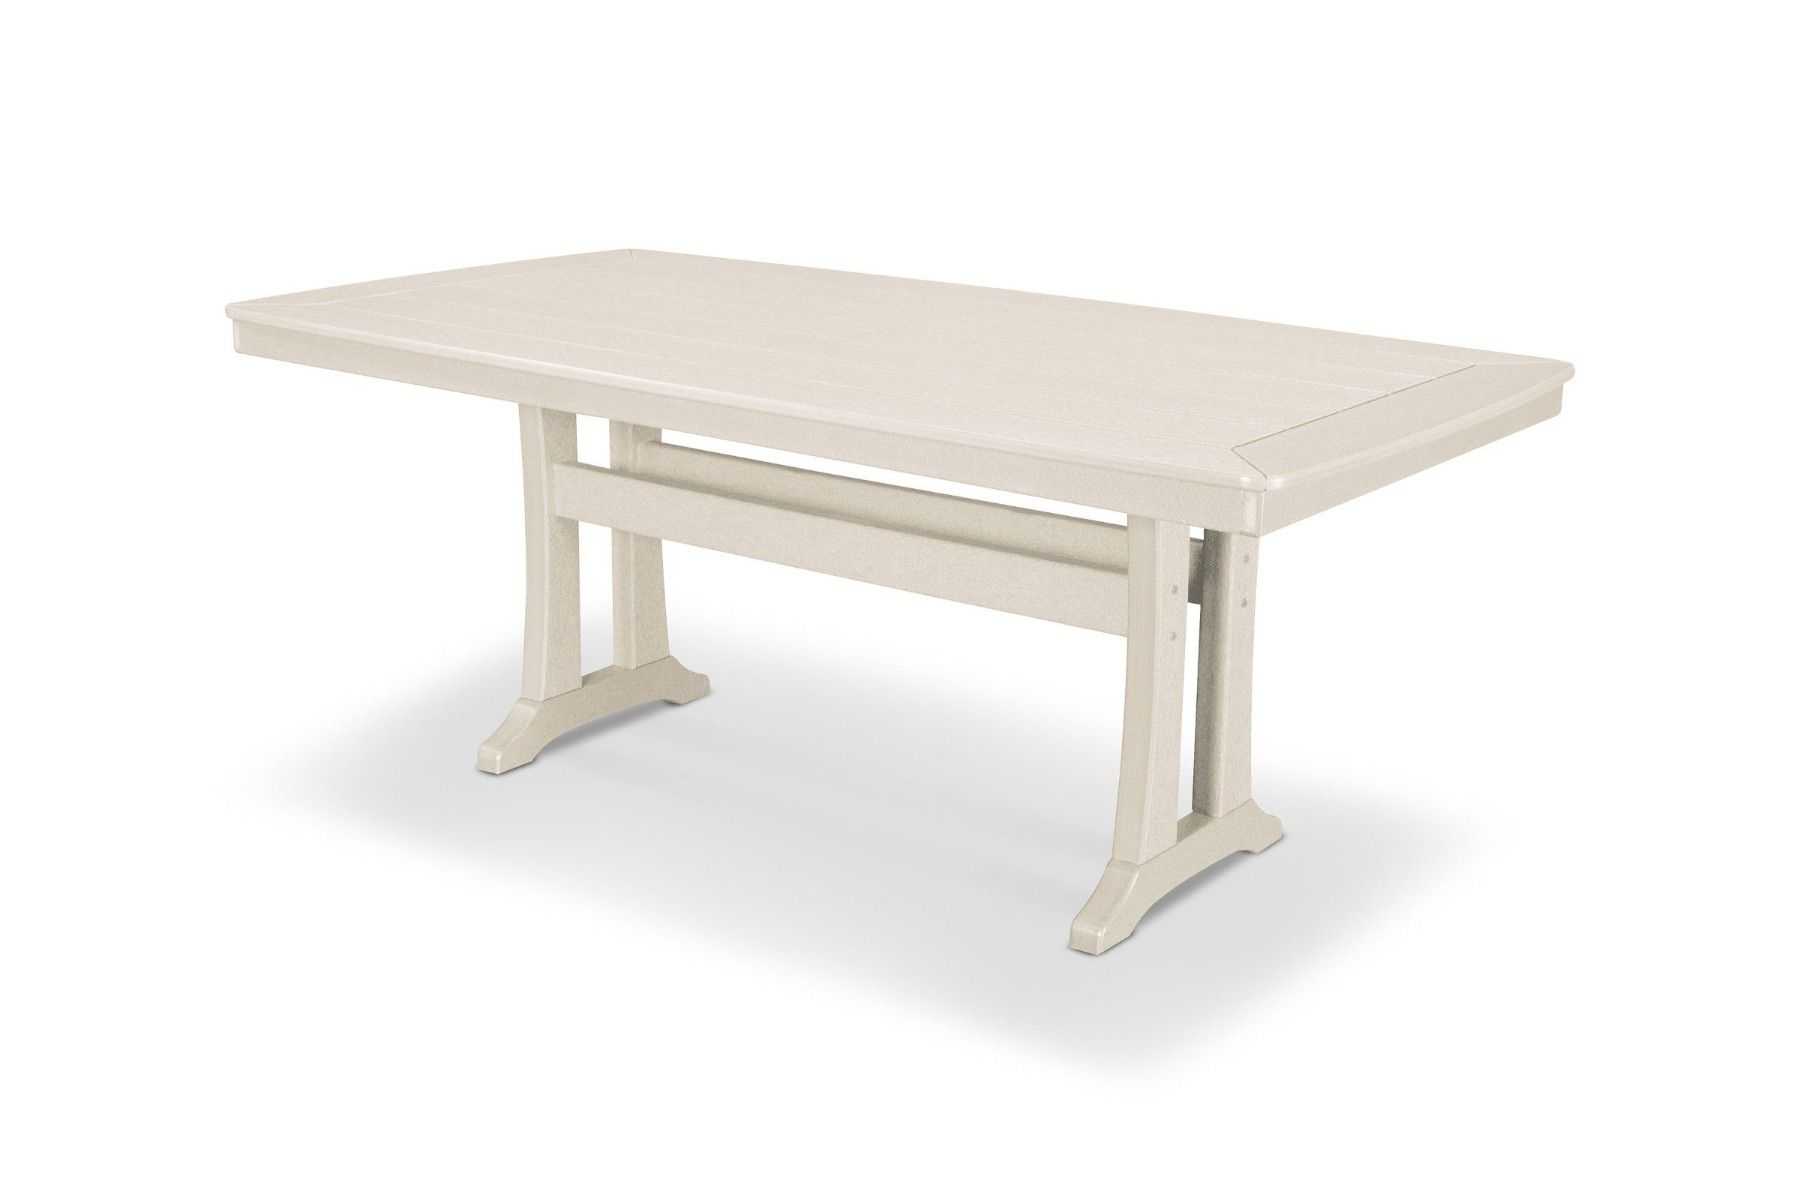 """Nautical Trestle 38"""" X 73"""" Dining Table Pl83 T2L1 Throughout 2018 Alexxia 38'' Trestle Dining Tables (View 6 of 15)"""